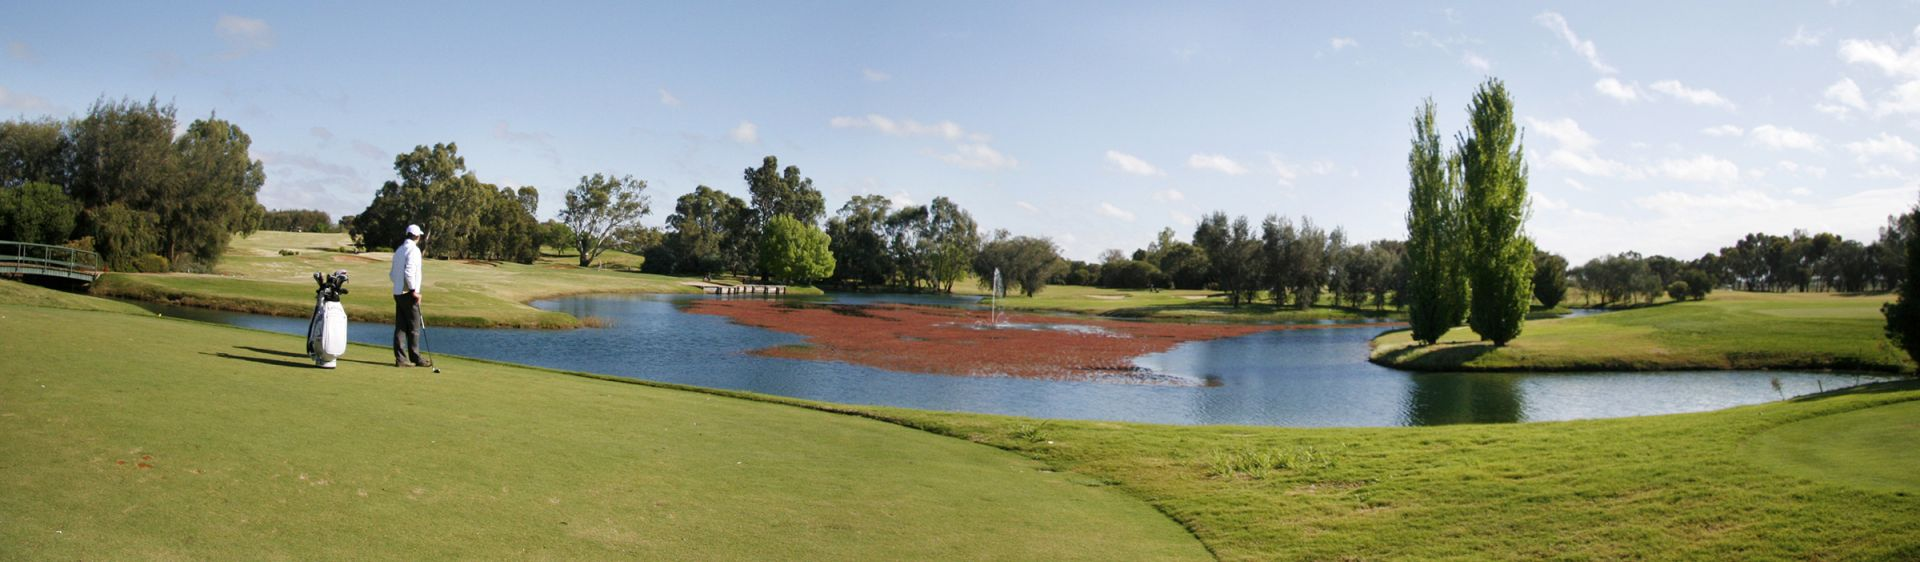 Golf Courses & Holidays in NSW - Best Golf Courses in NSW